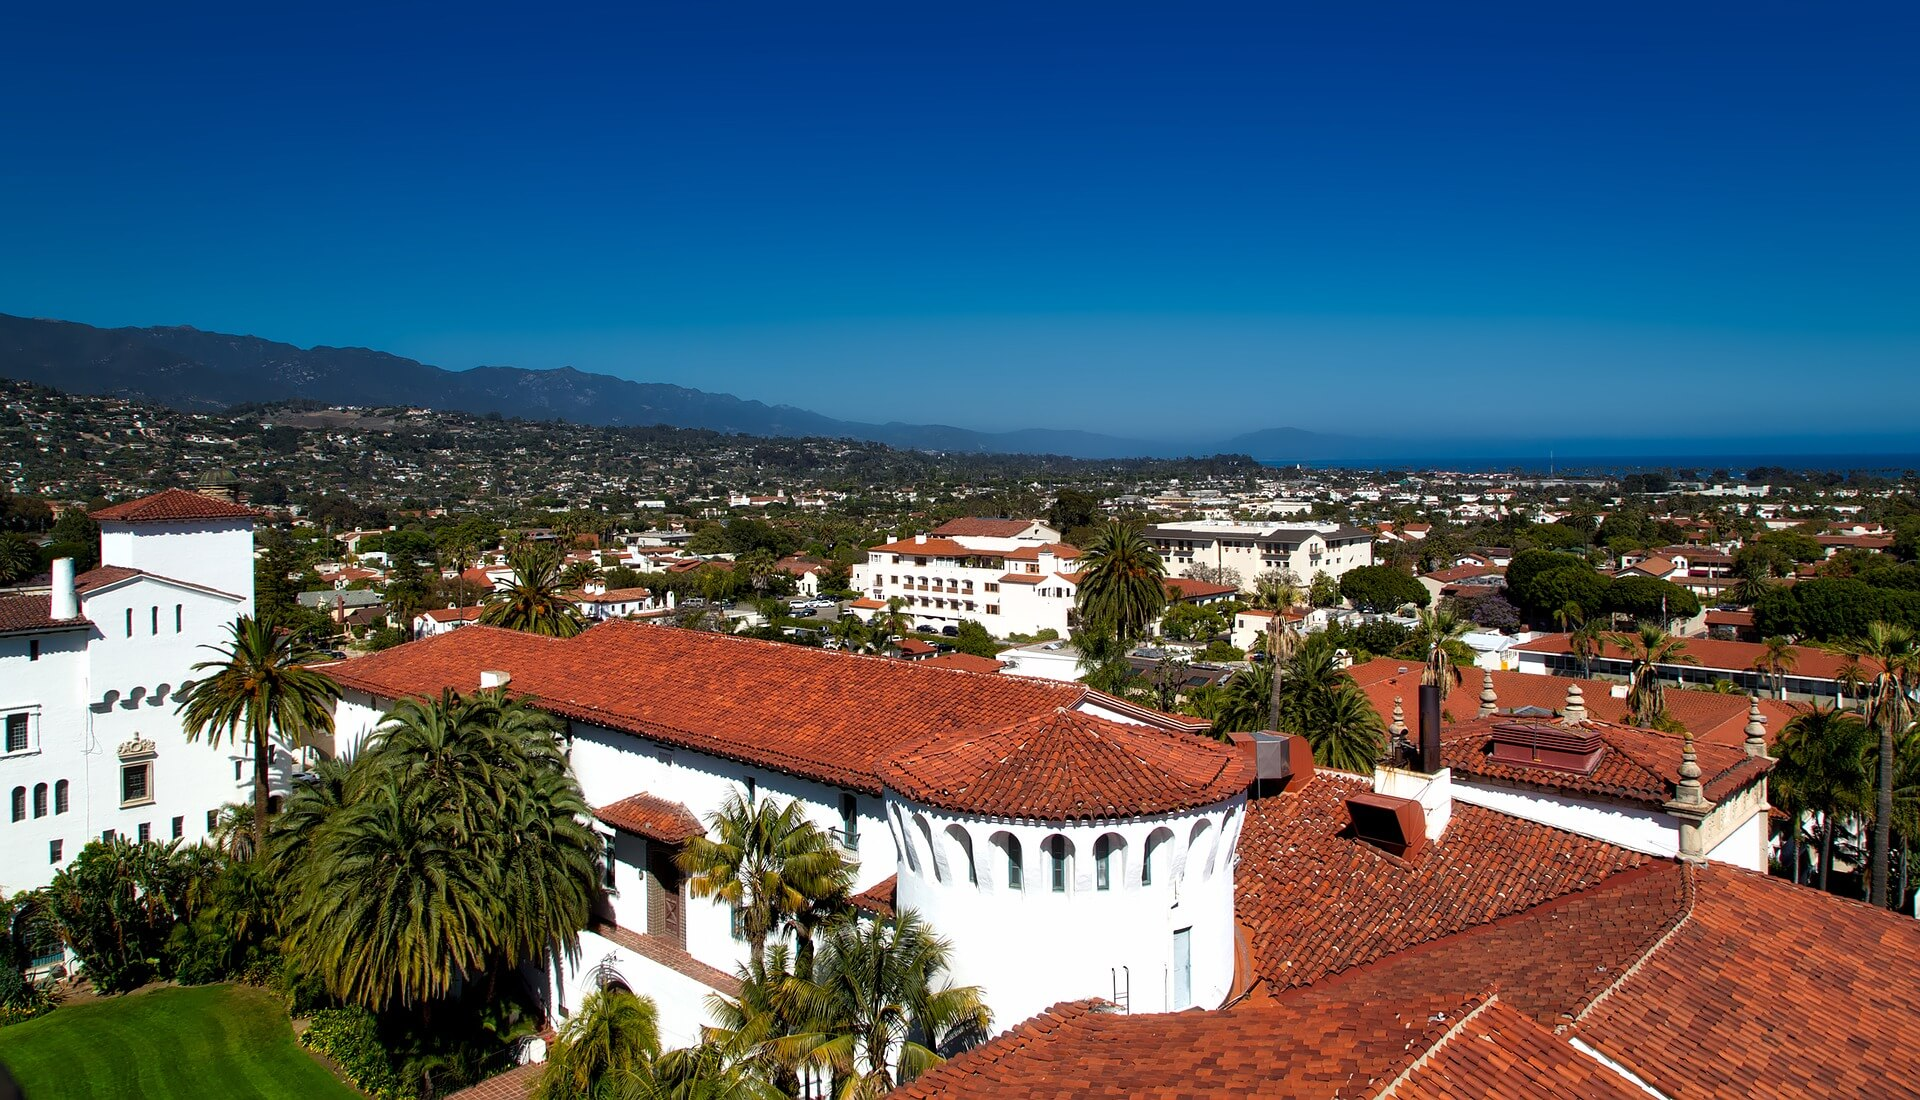 How to spend a weekend in santa barbara